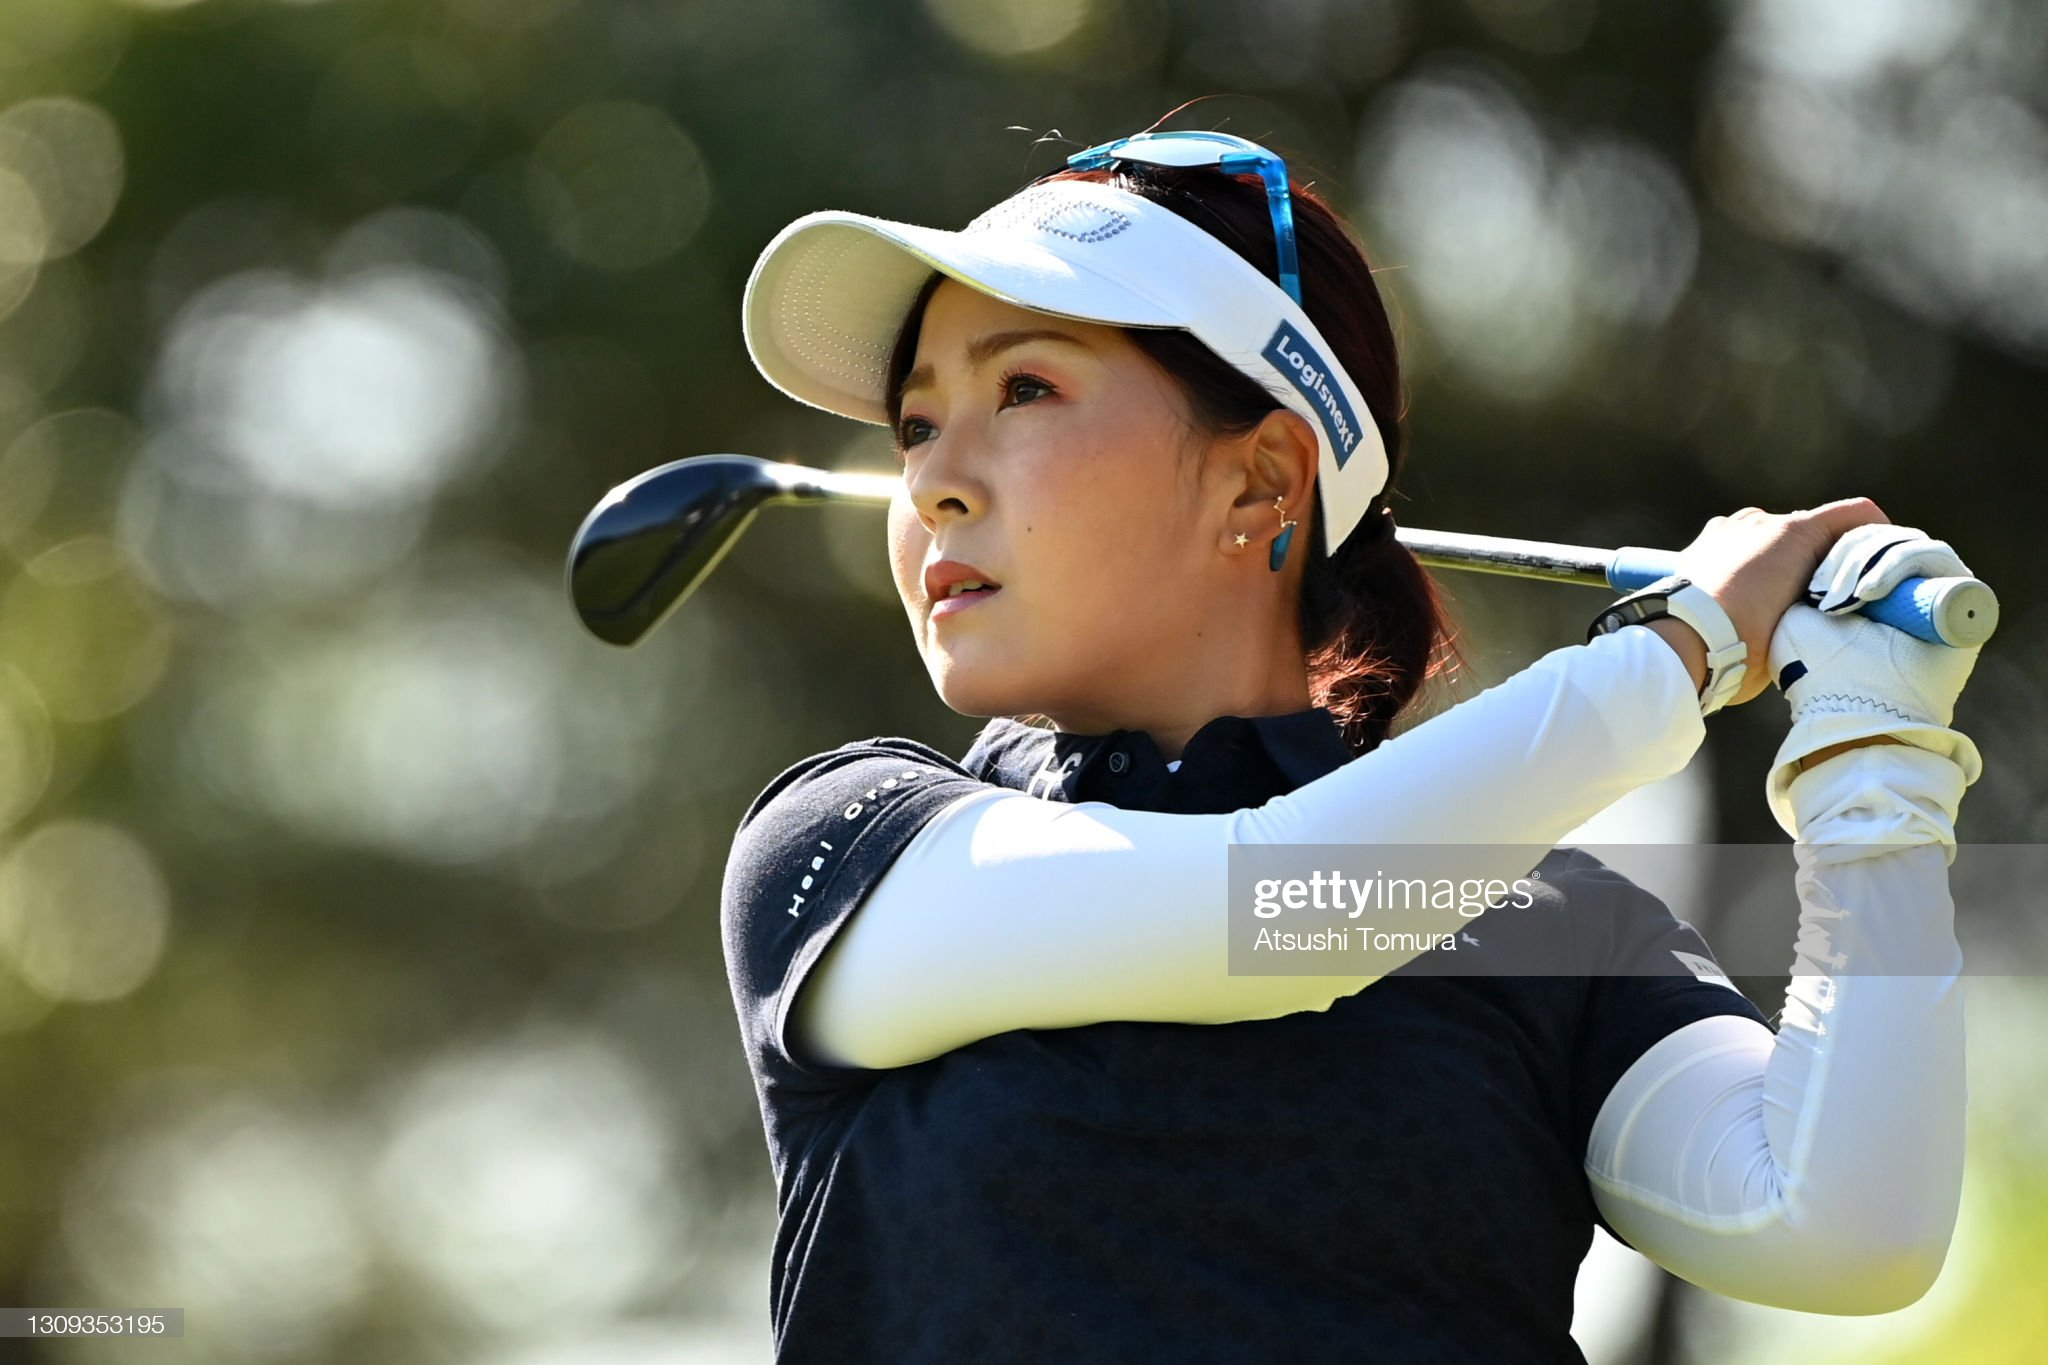 https://media.gettyimages.com/photos/serena-aoki-of-japan-hits-her-tee-shot-on-the-2nd-hole-during-the-picture-id1309353195?s=2048x2048